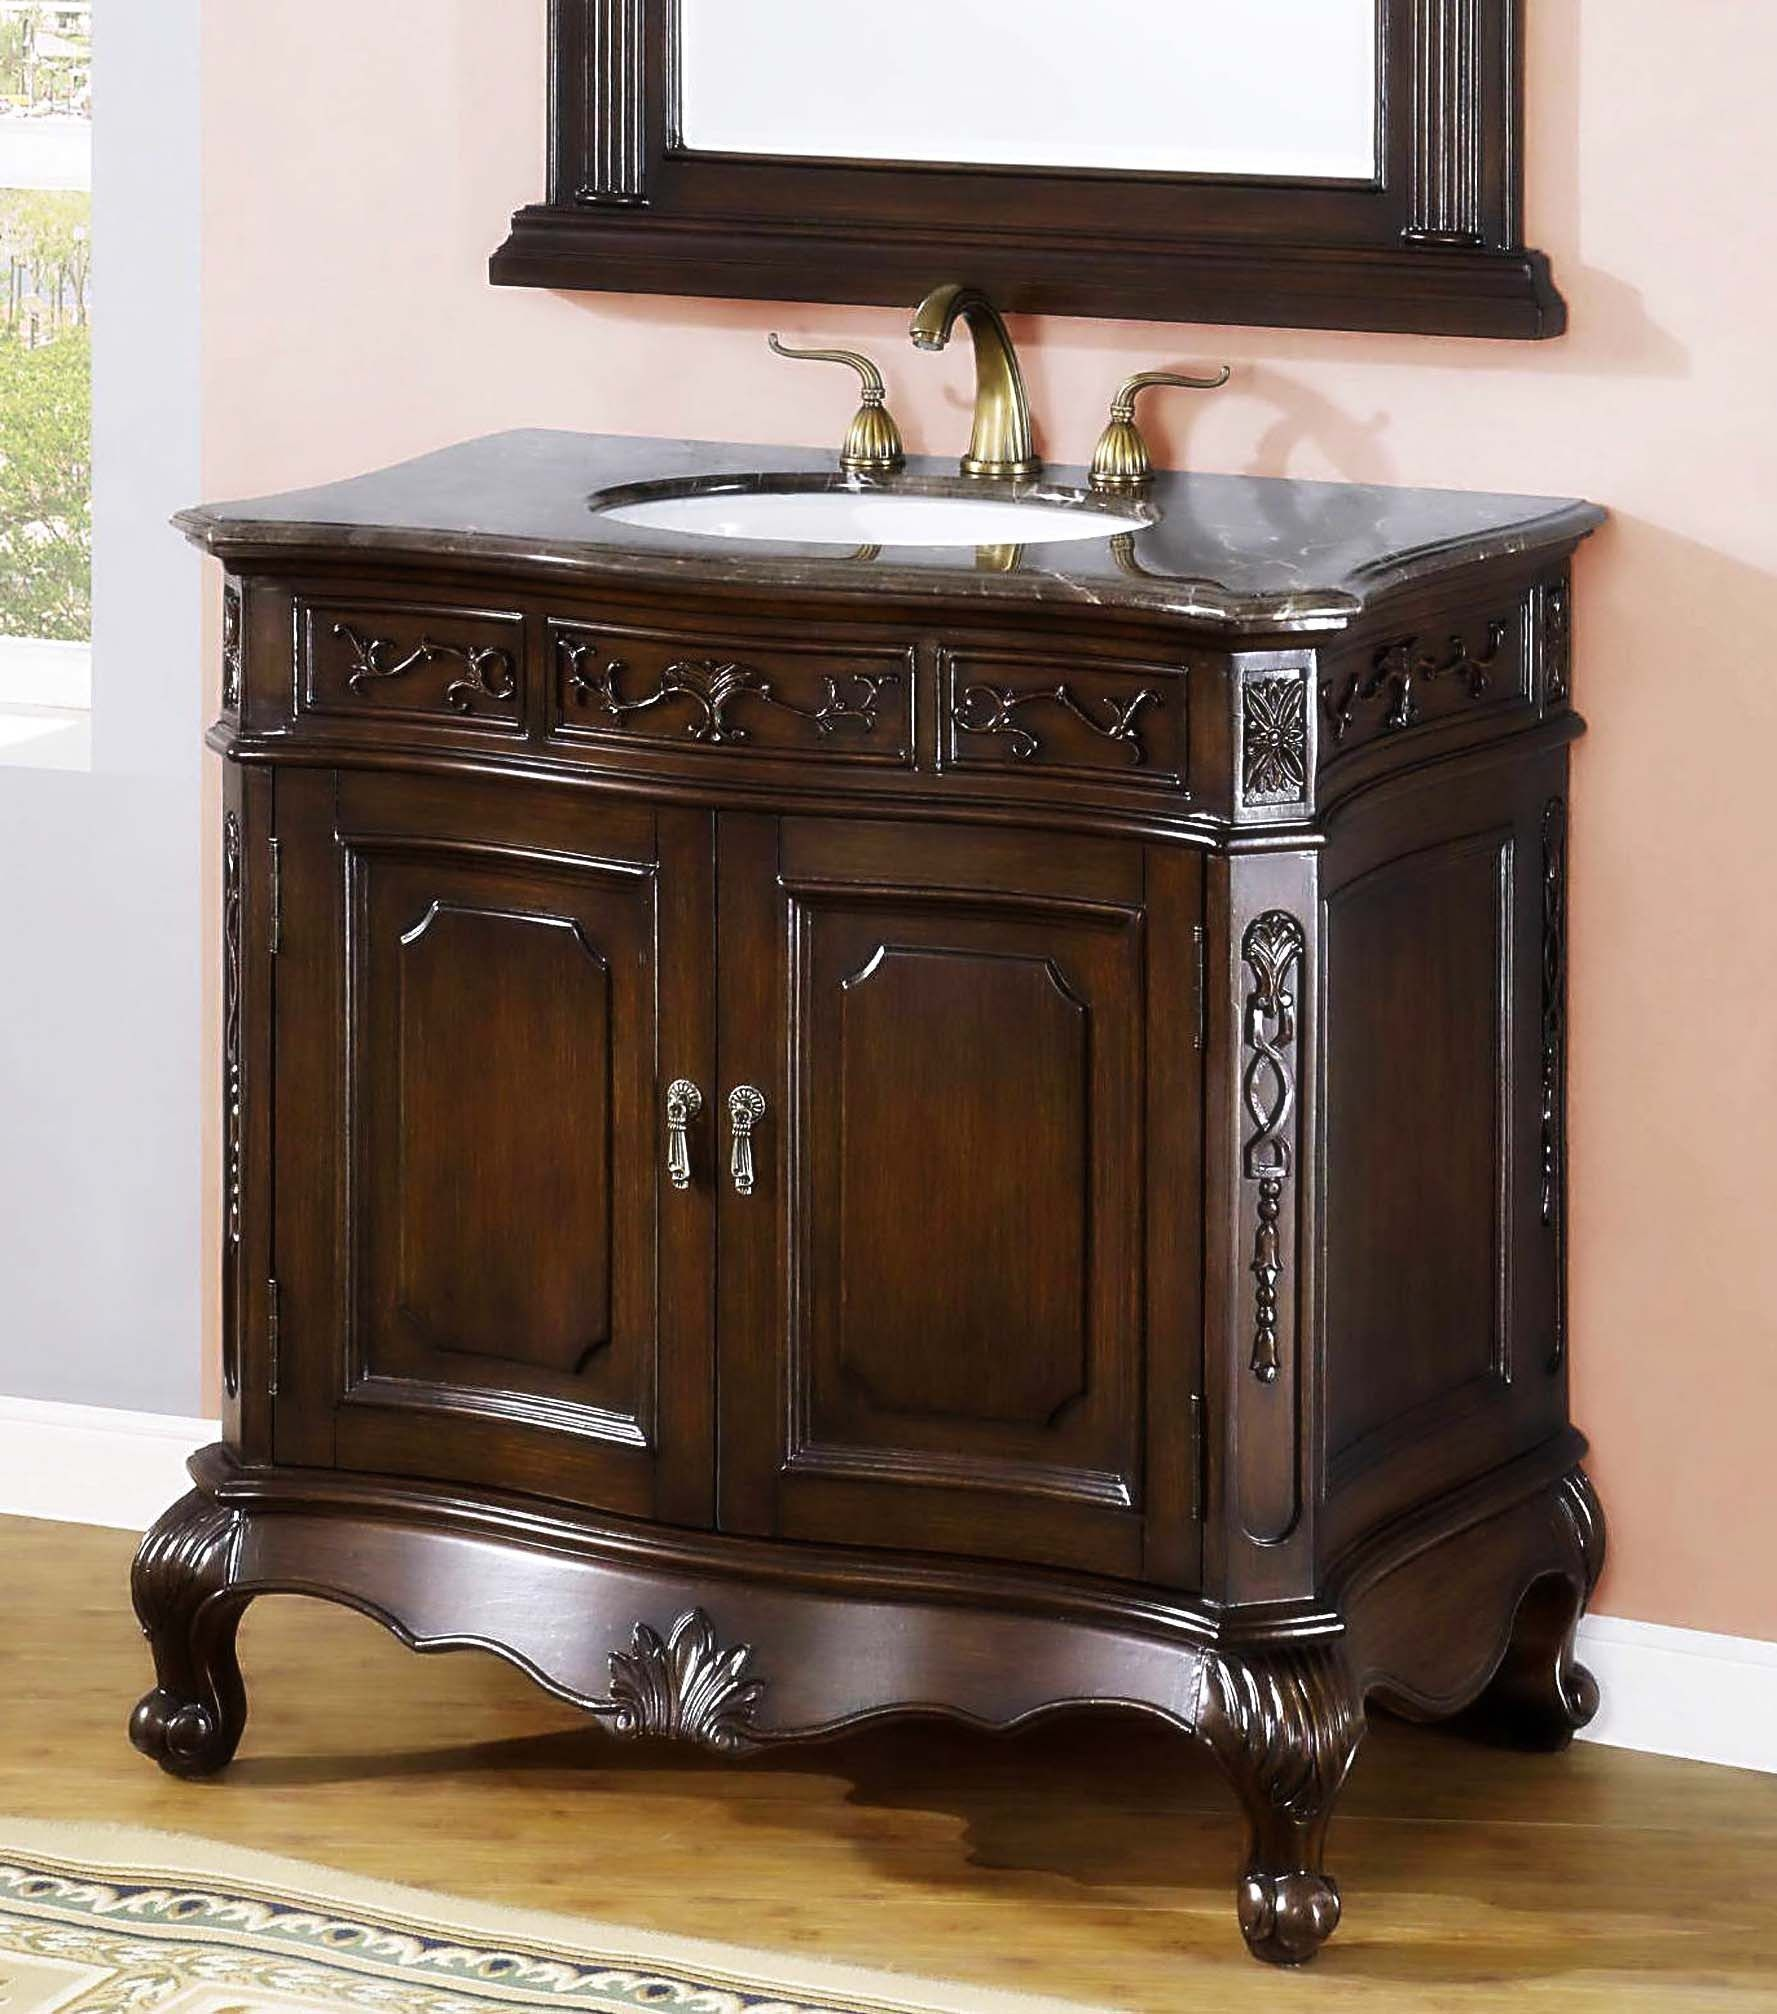 Lowes Bathroom Vanity Tops Lovely Vanities Clearance Of Solid Surface Vanity Topmercial Single Sink Bathroom Vanity Bathroom Sink Vanity Best Bathroom Vanities